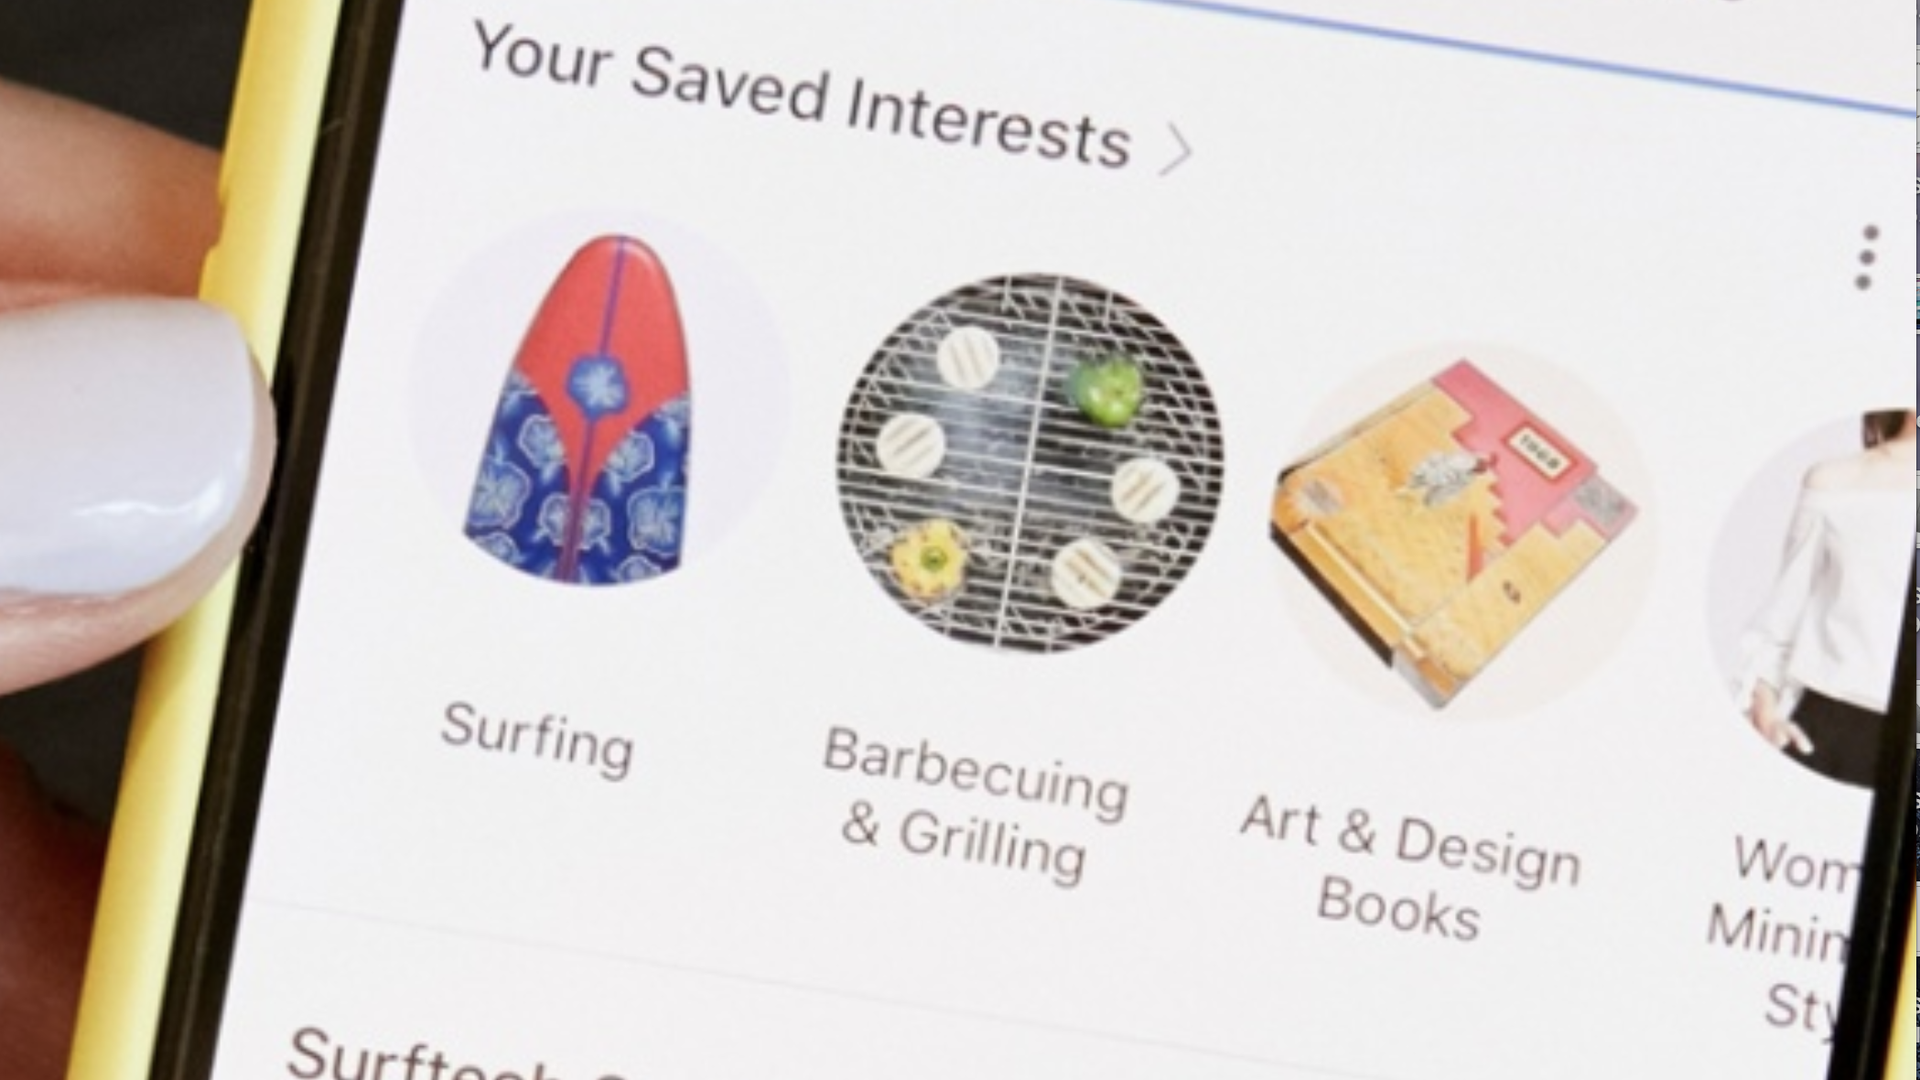 eBay's new personalization effort